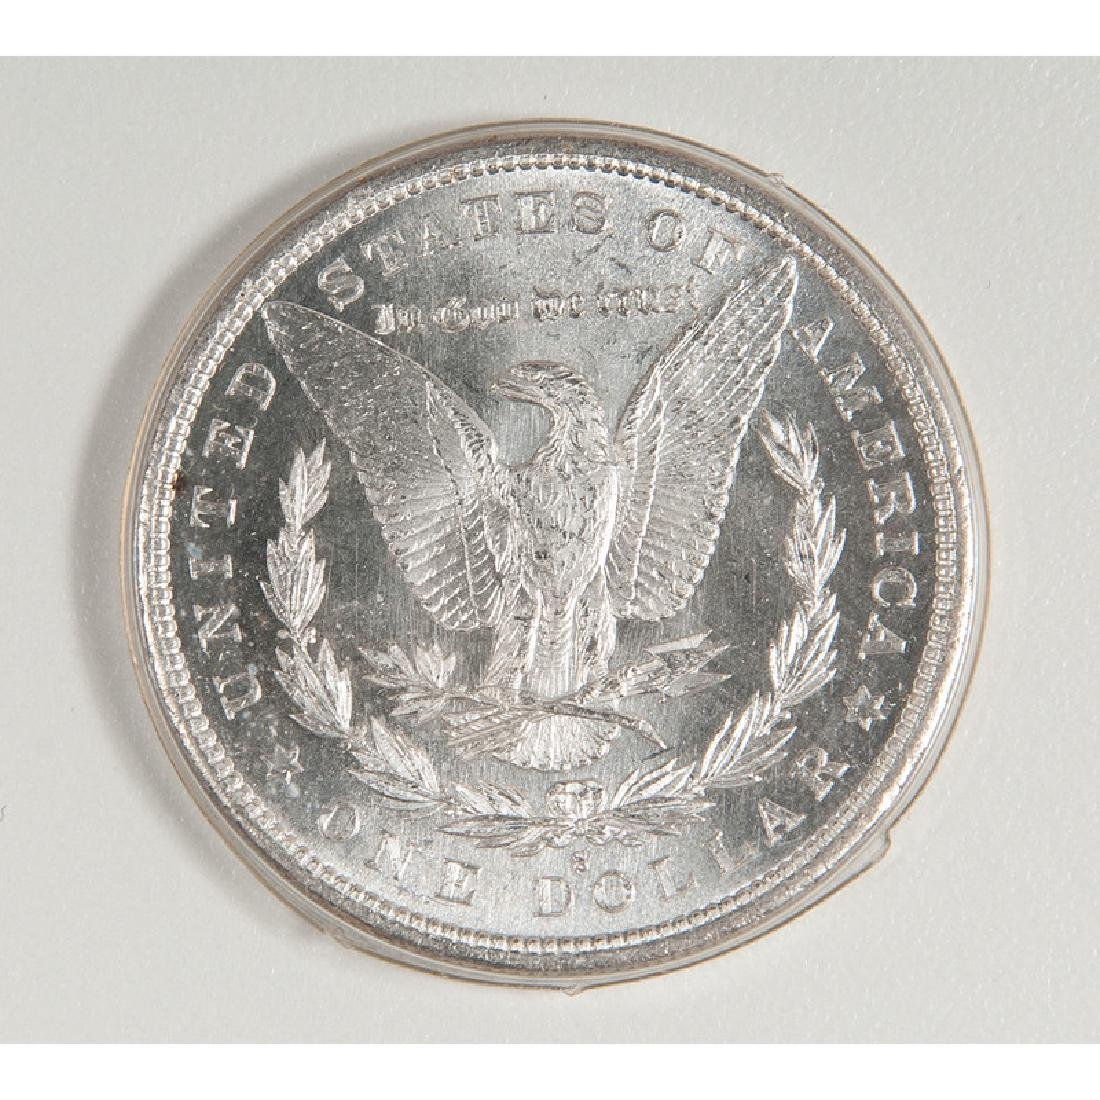 United States Morgan Silver Dollar 1879-S - 2